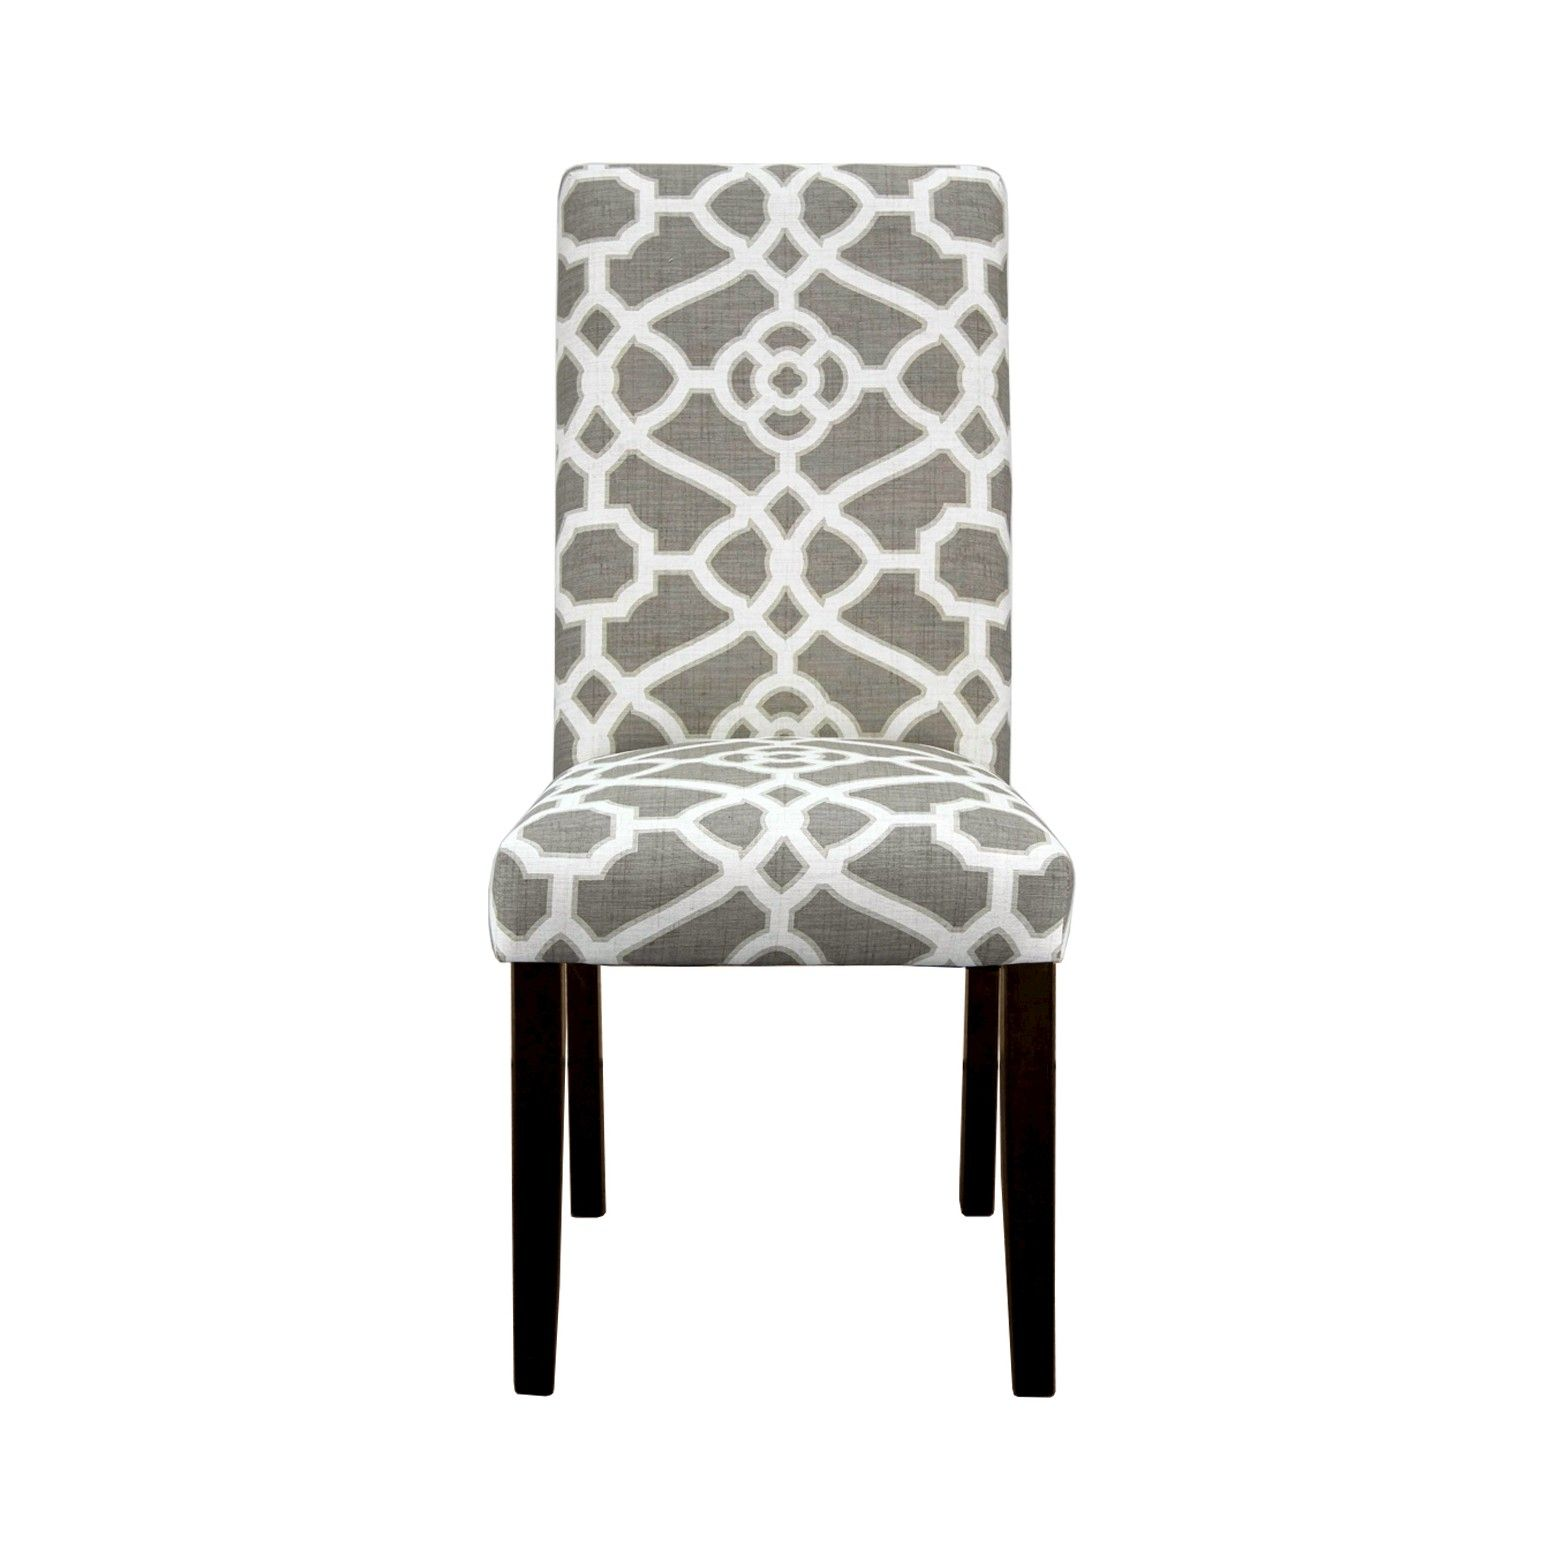 Absolutely timeless this accent dining chair has the chic finishing